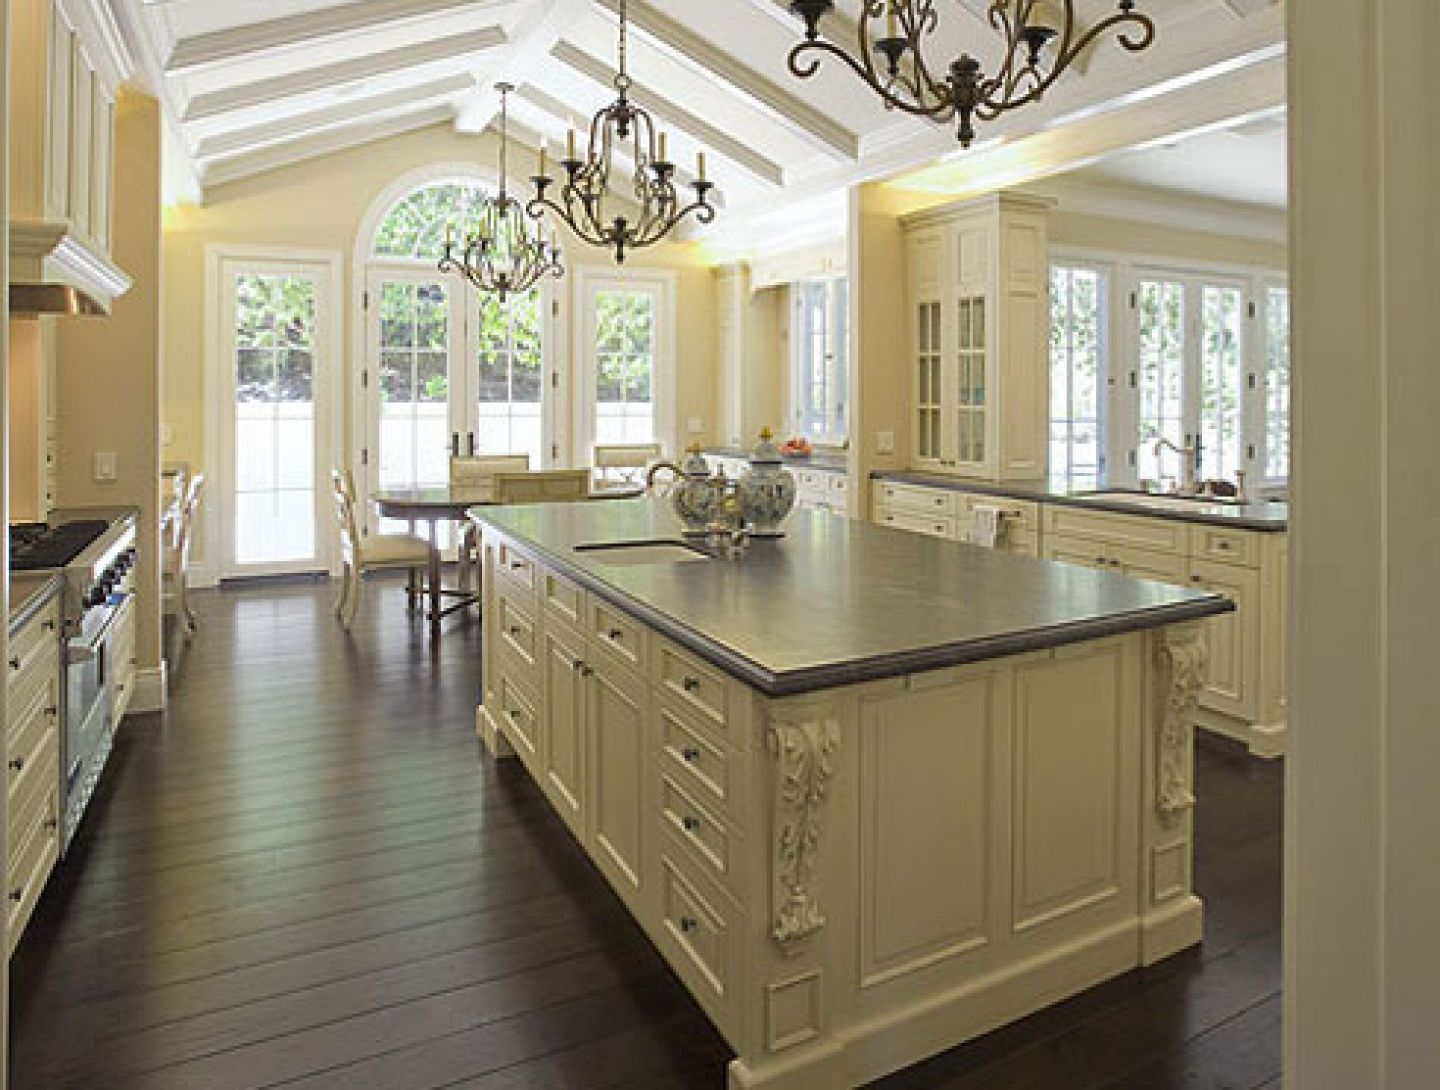 Pictures Of French Country Kitchen Design French Country